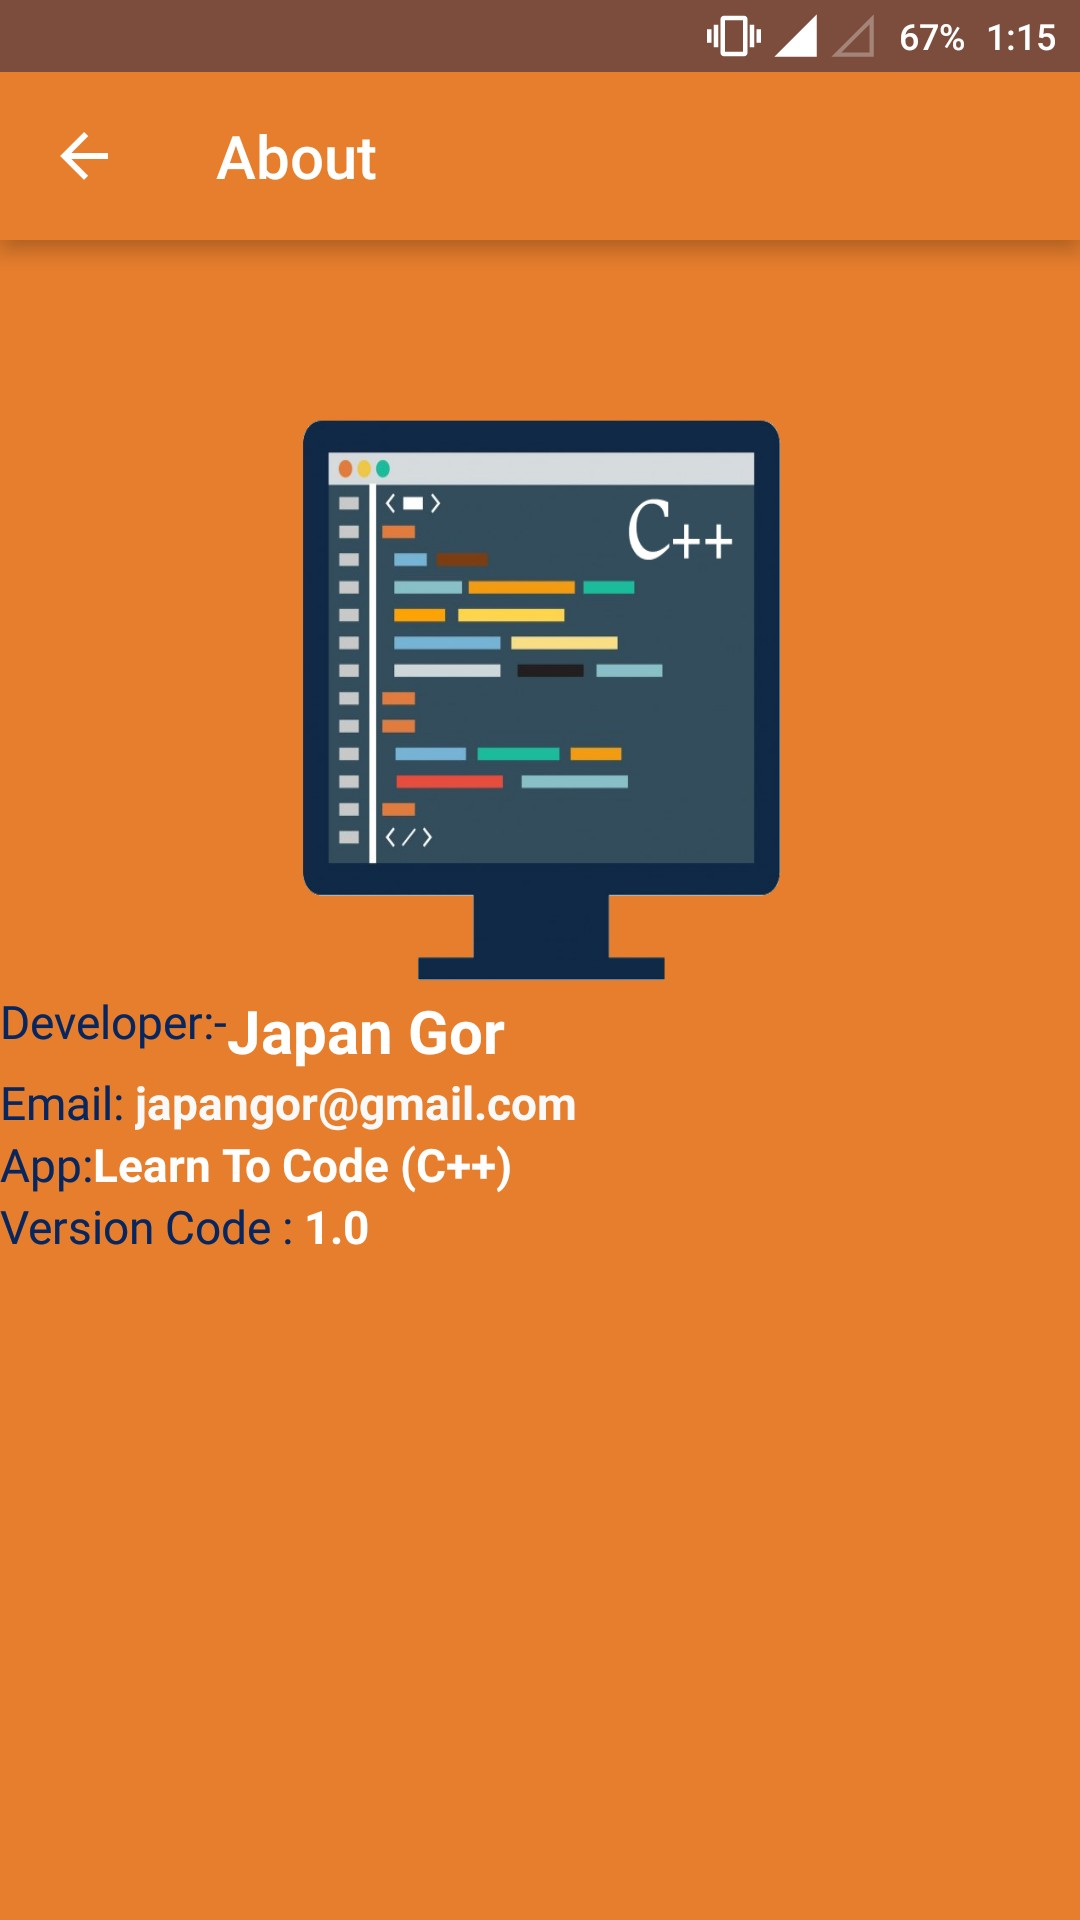 Learn To Code (C++)